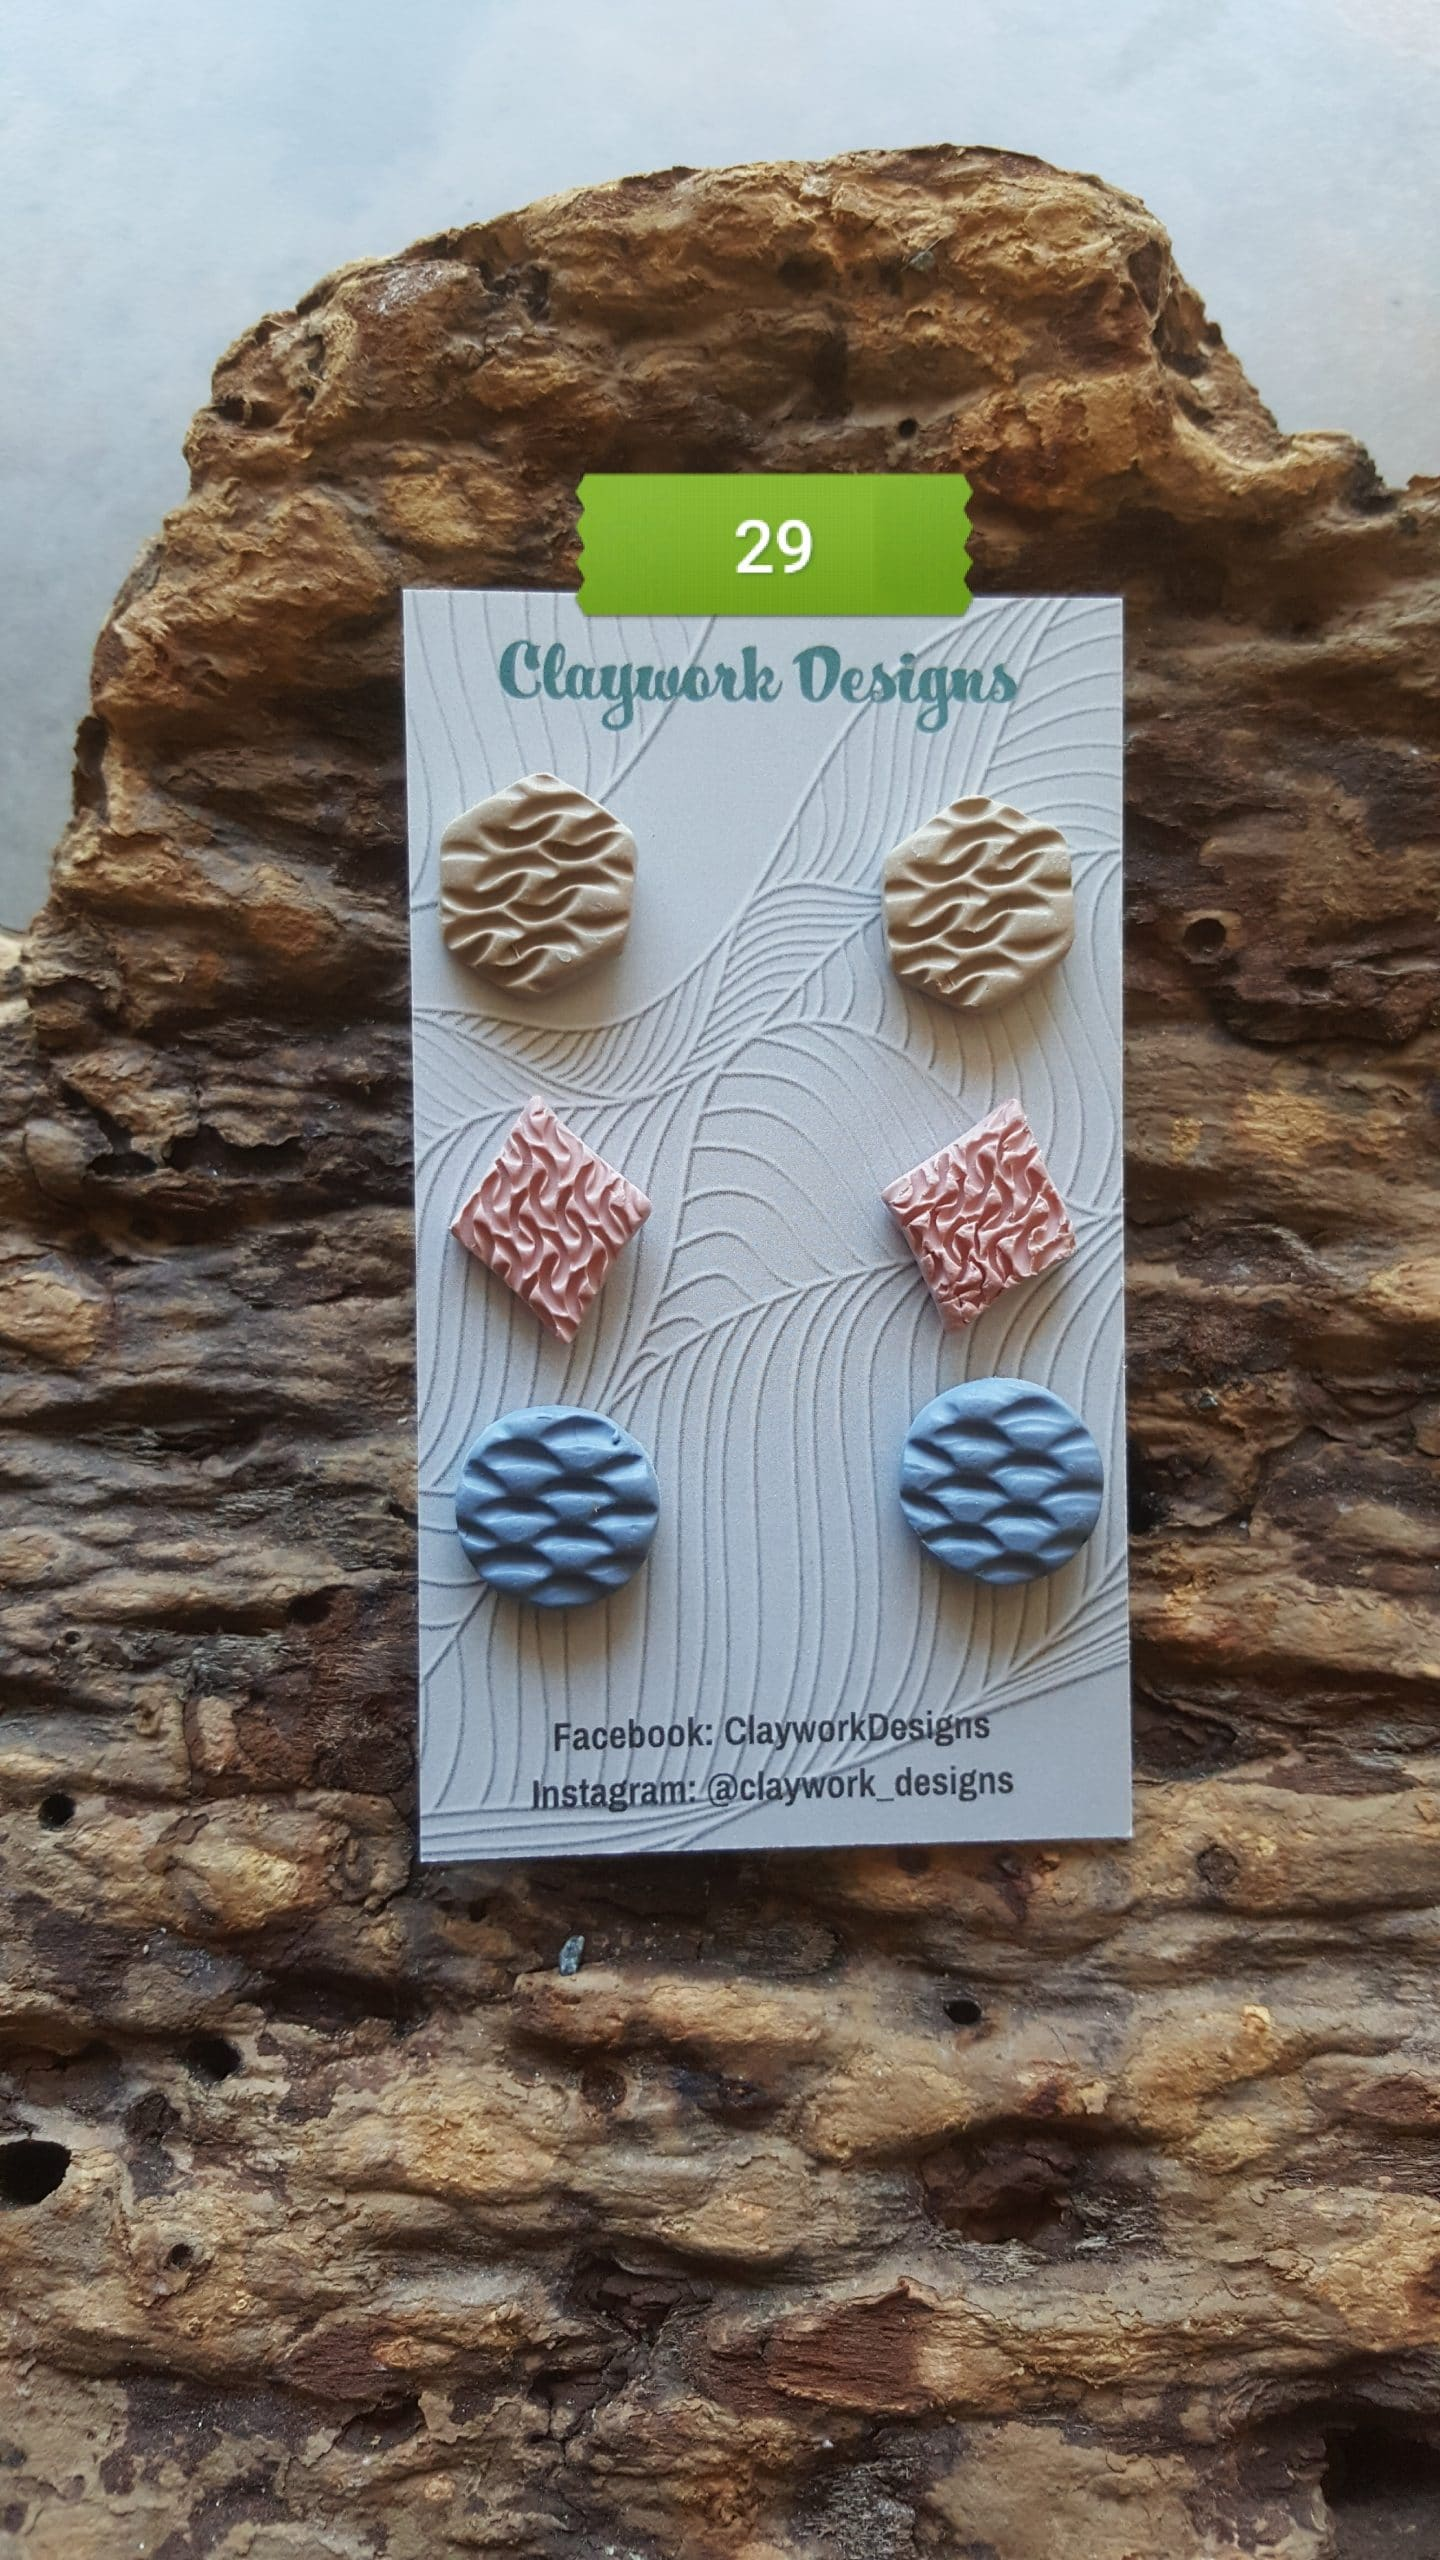 Wirework Designs | Handcrafted chainmaille jewellery and chainmaille products | Chainmaille Weave Stud Earring - 3 Packs | 20210620_173427